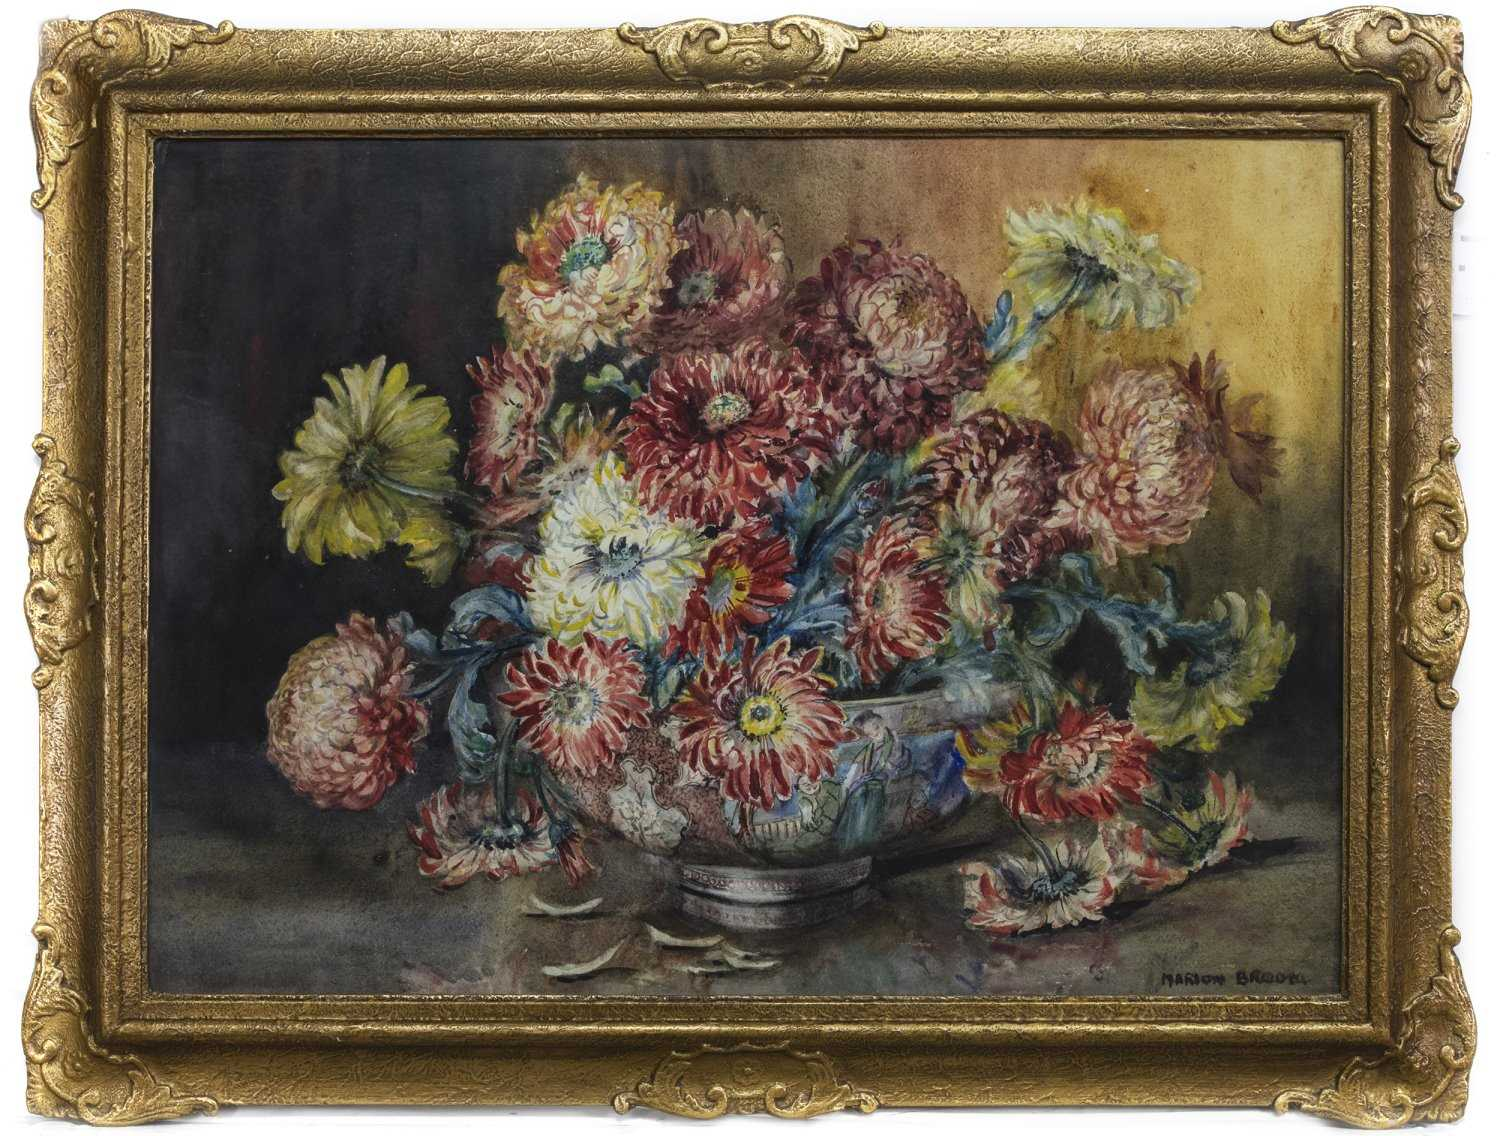 Lot 83 - STILL LIFE WITH FALLEN PETALS, A WATERCOLOUR BY MARION BROOM